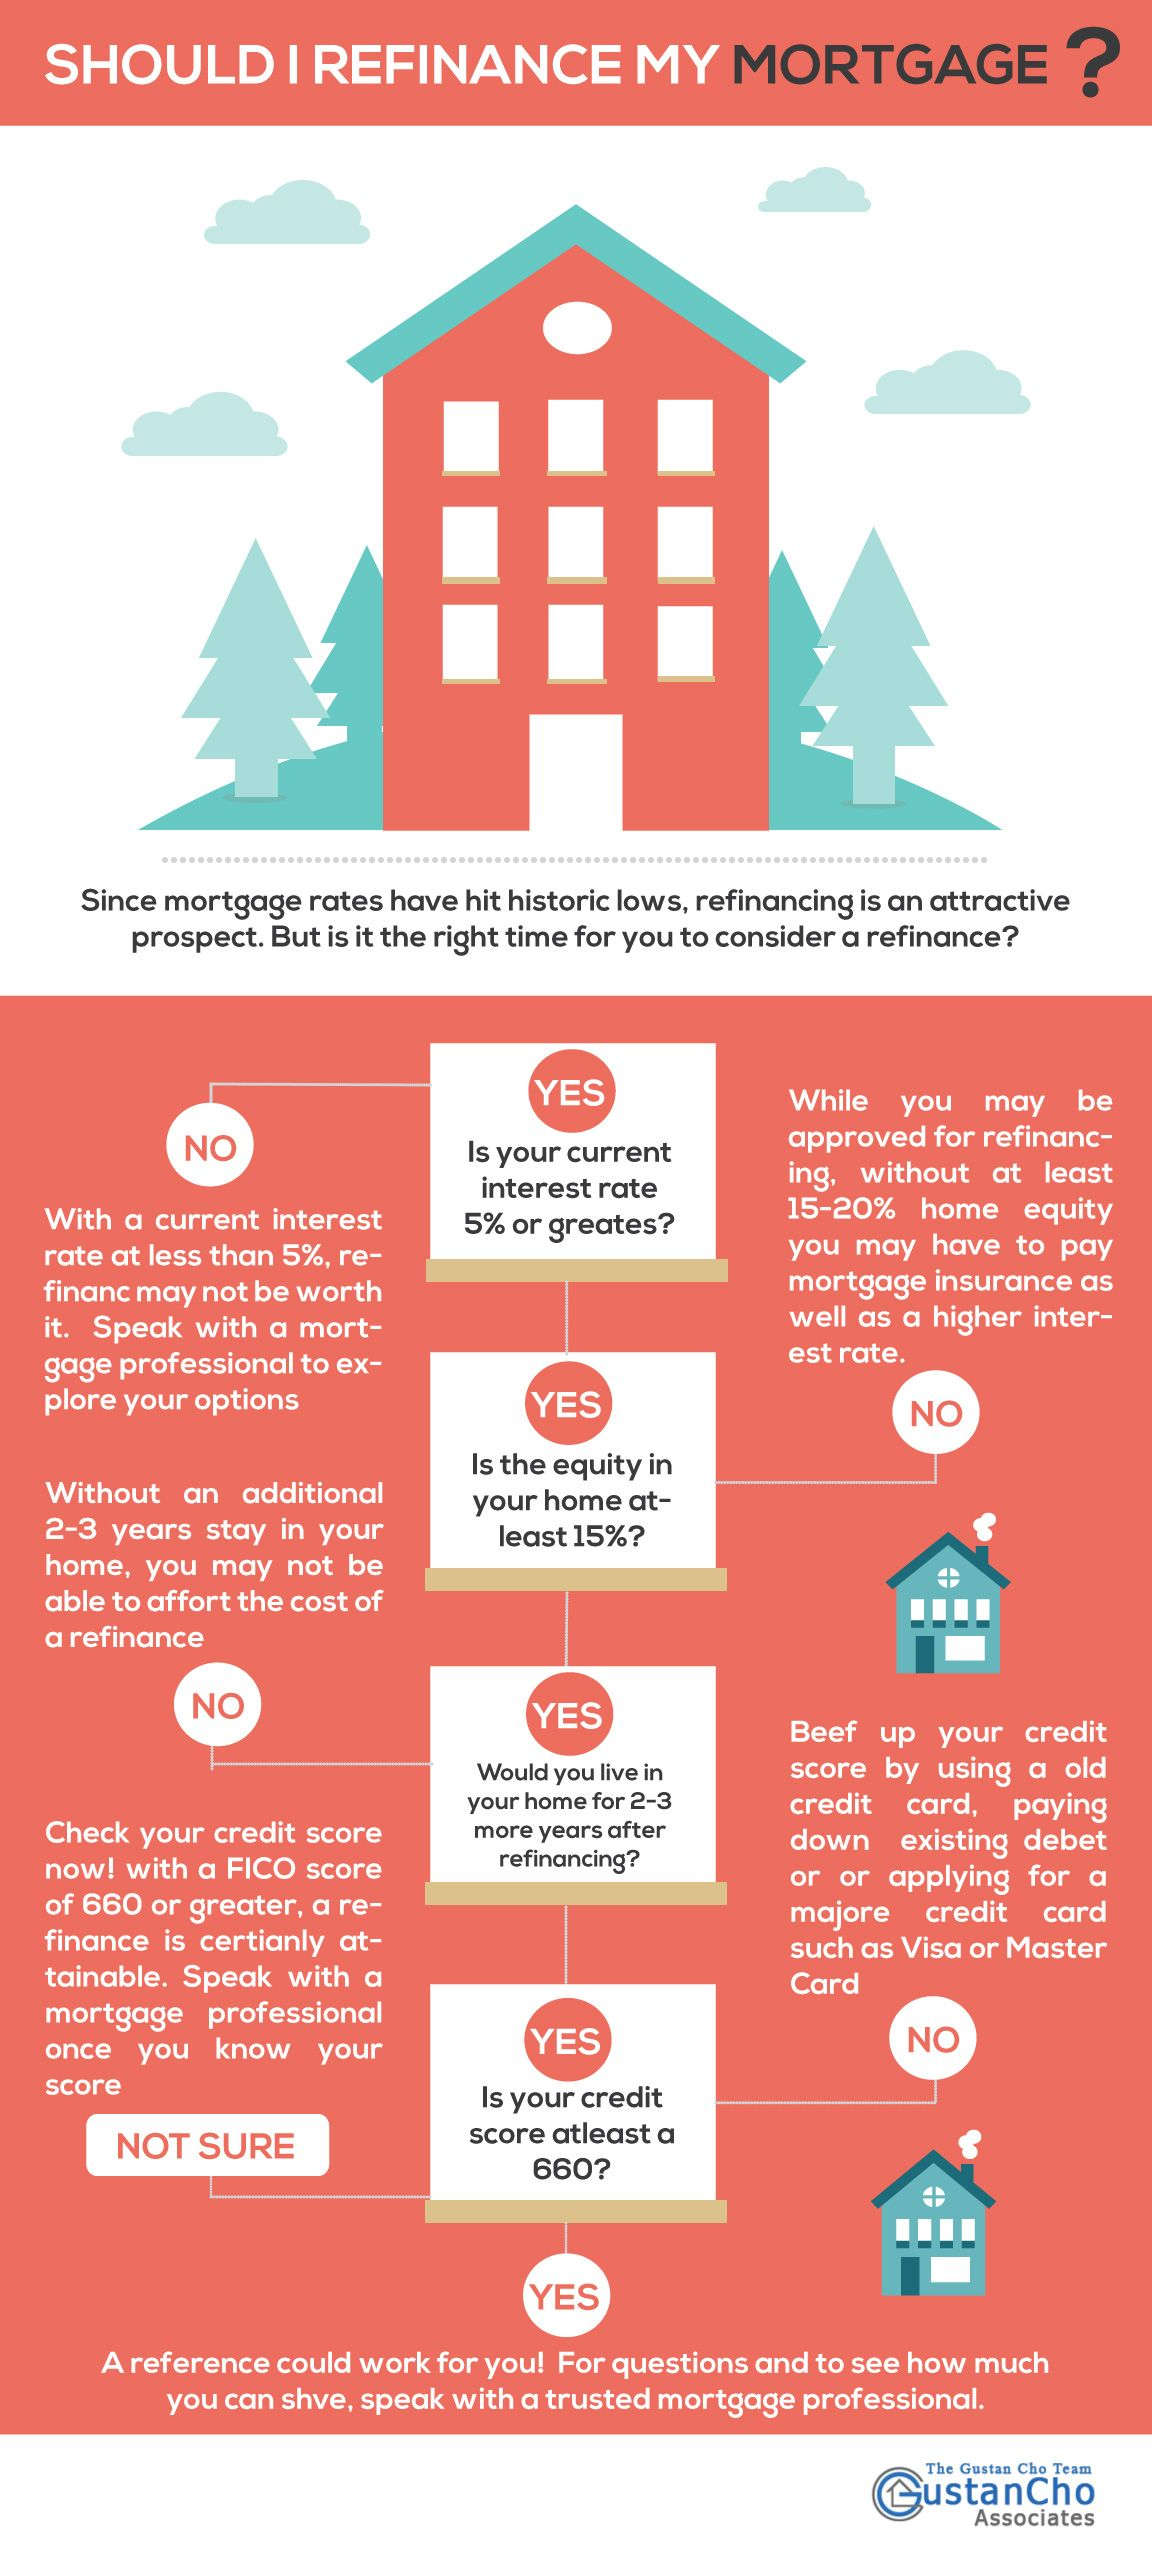 http://gustancho.com/refinance-mortgage-infographic  Over the last couple of years with interest rates at a 40-year low, many people refinanced their mortgages. Even though rates have crept up over the last couple of months, refinancing may make sense for you. Use our refinance calculator to analyze your situation today!  http://gustancho.com